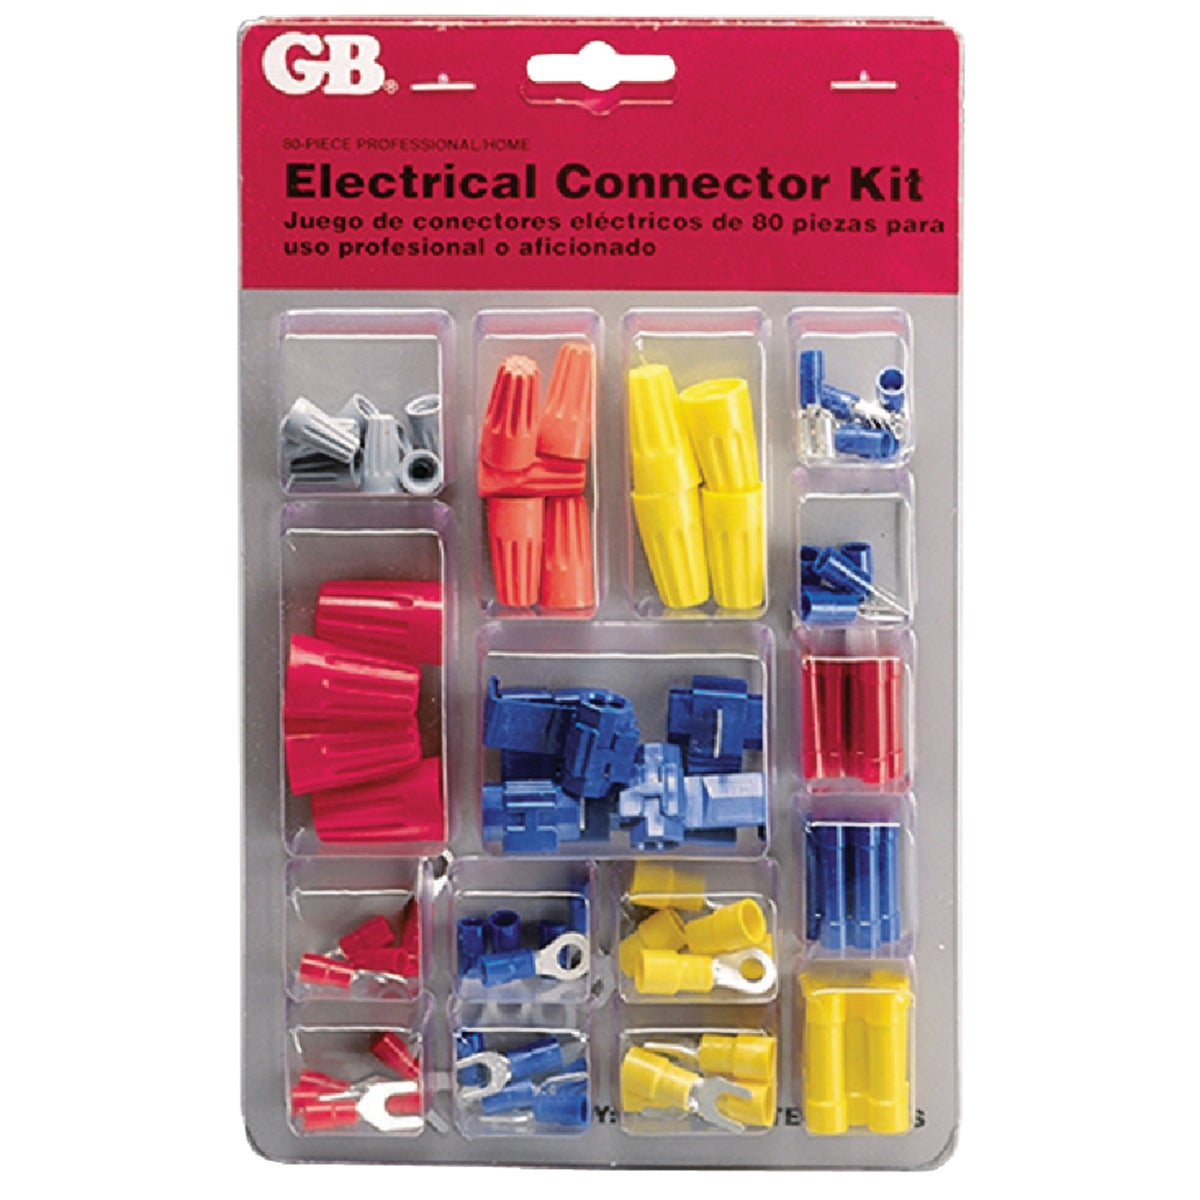 GB Electrical CONNECTOR & TERMINAL KIT TK-100